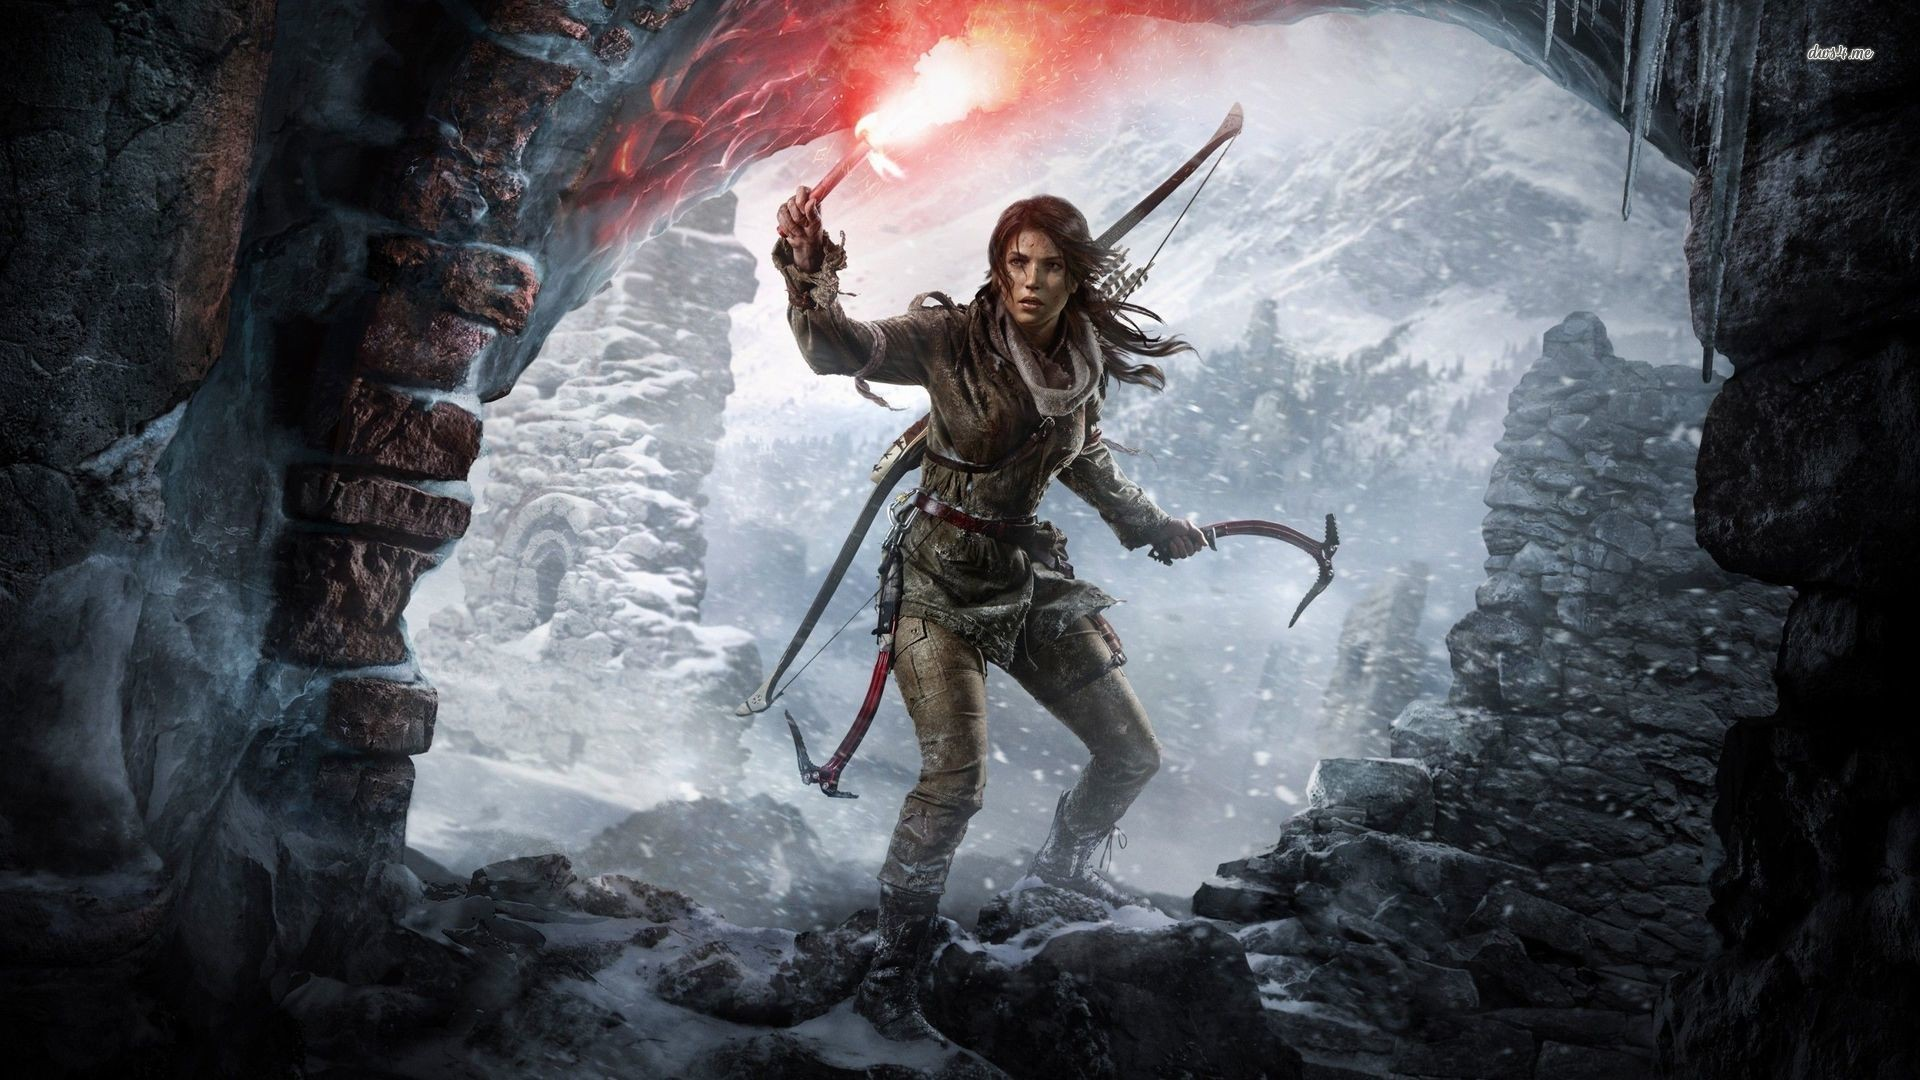 background - Čeština pro Rise of the Tomb Raider